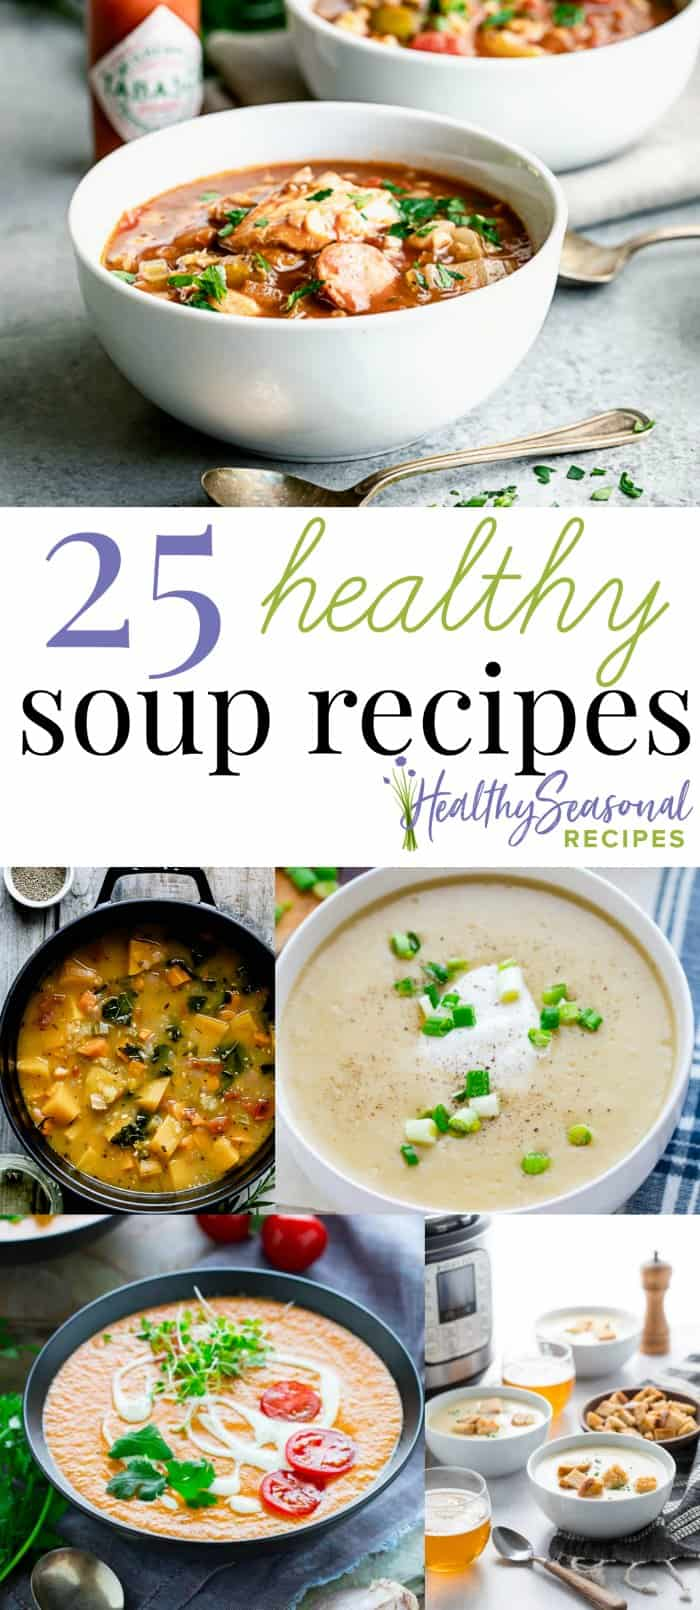 25 Healthy Soup Recipes, from vegan soups, slow cooker and crock pot soup and stews, pureed soups and chunky hearty soup. There are 25 healthy options to try this fall! #healthyseasonal #soup #healthysoup #healthy #stew